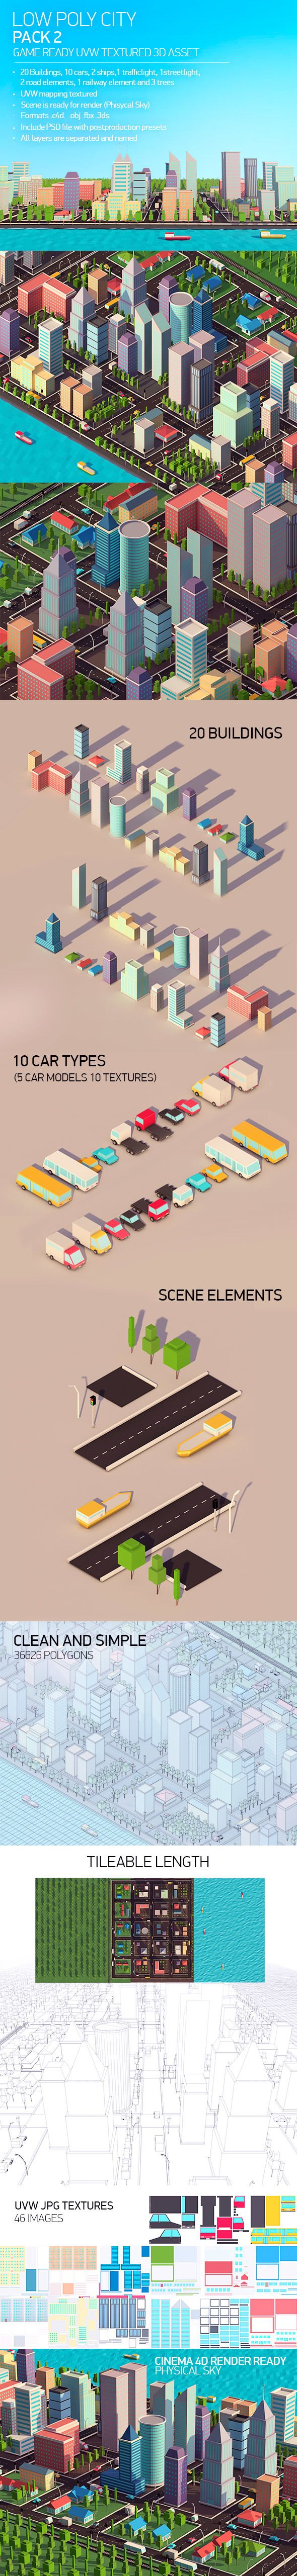 Low Poly City Pack 2 3D Models Design Template #cinema4d #3D #3dDesign Download here: https://3docean.net/item/low-poly-city-pack-2/14883512?ref=yinkira